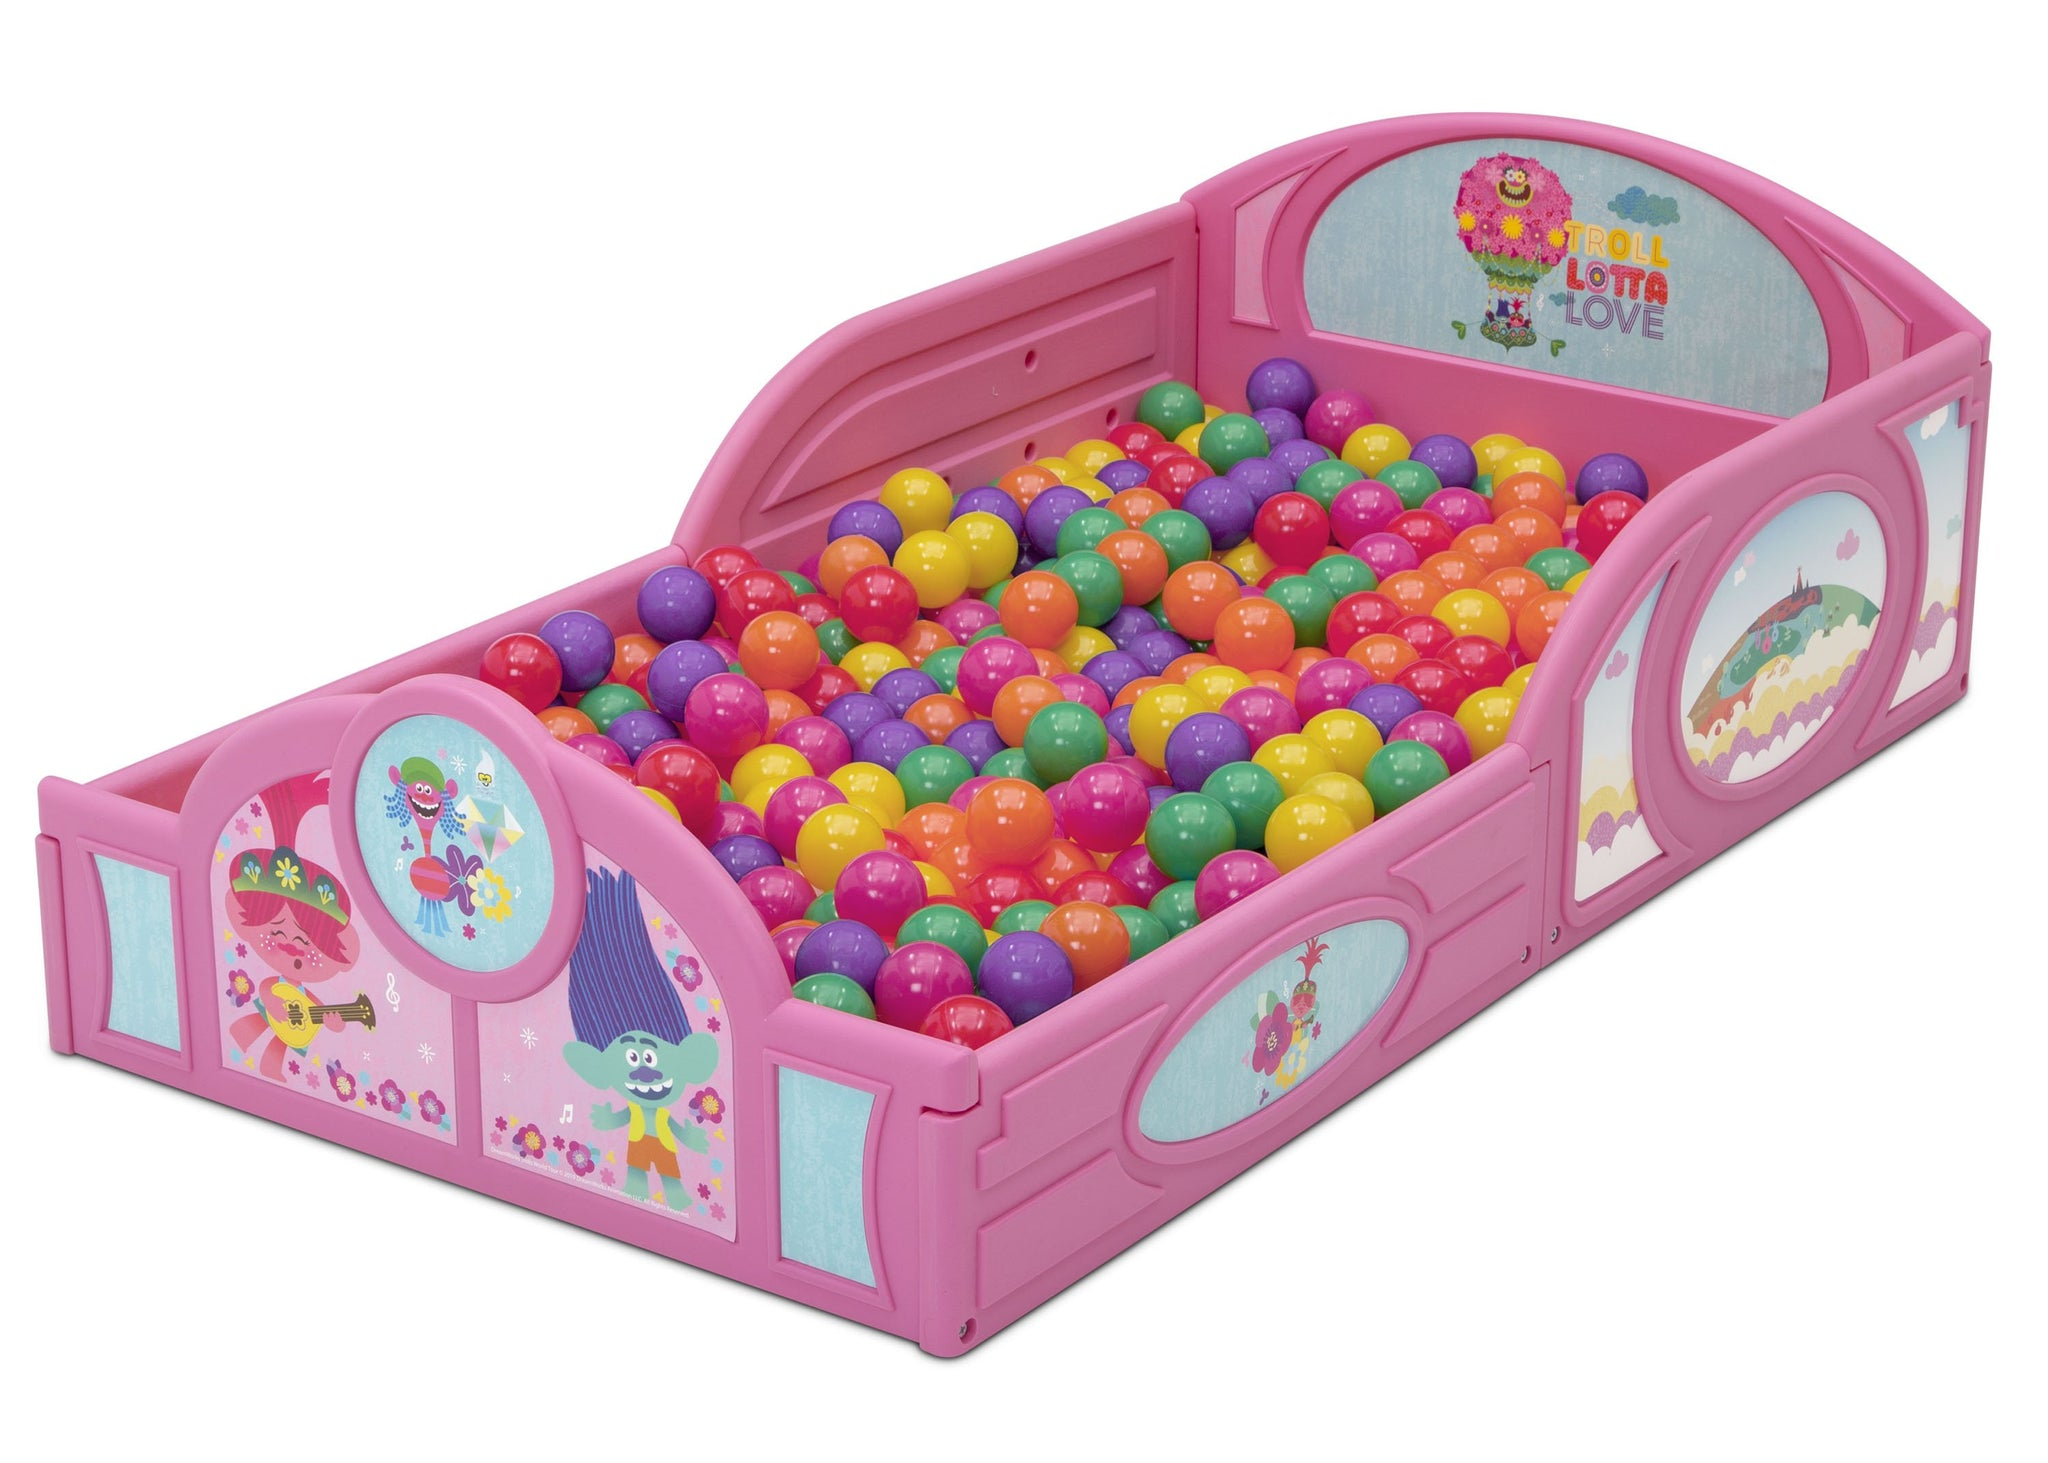 Delta Children Trolls World Tour (1177) Plastic Sleep and Play Toddler Bed, Left Silo View